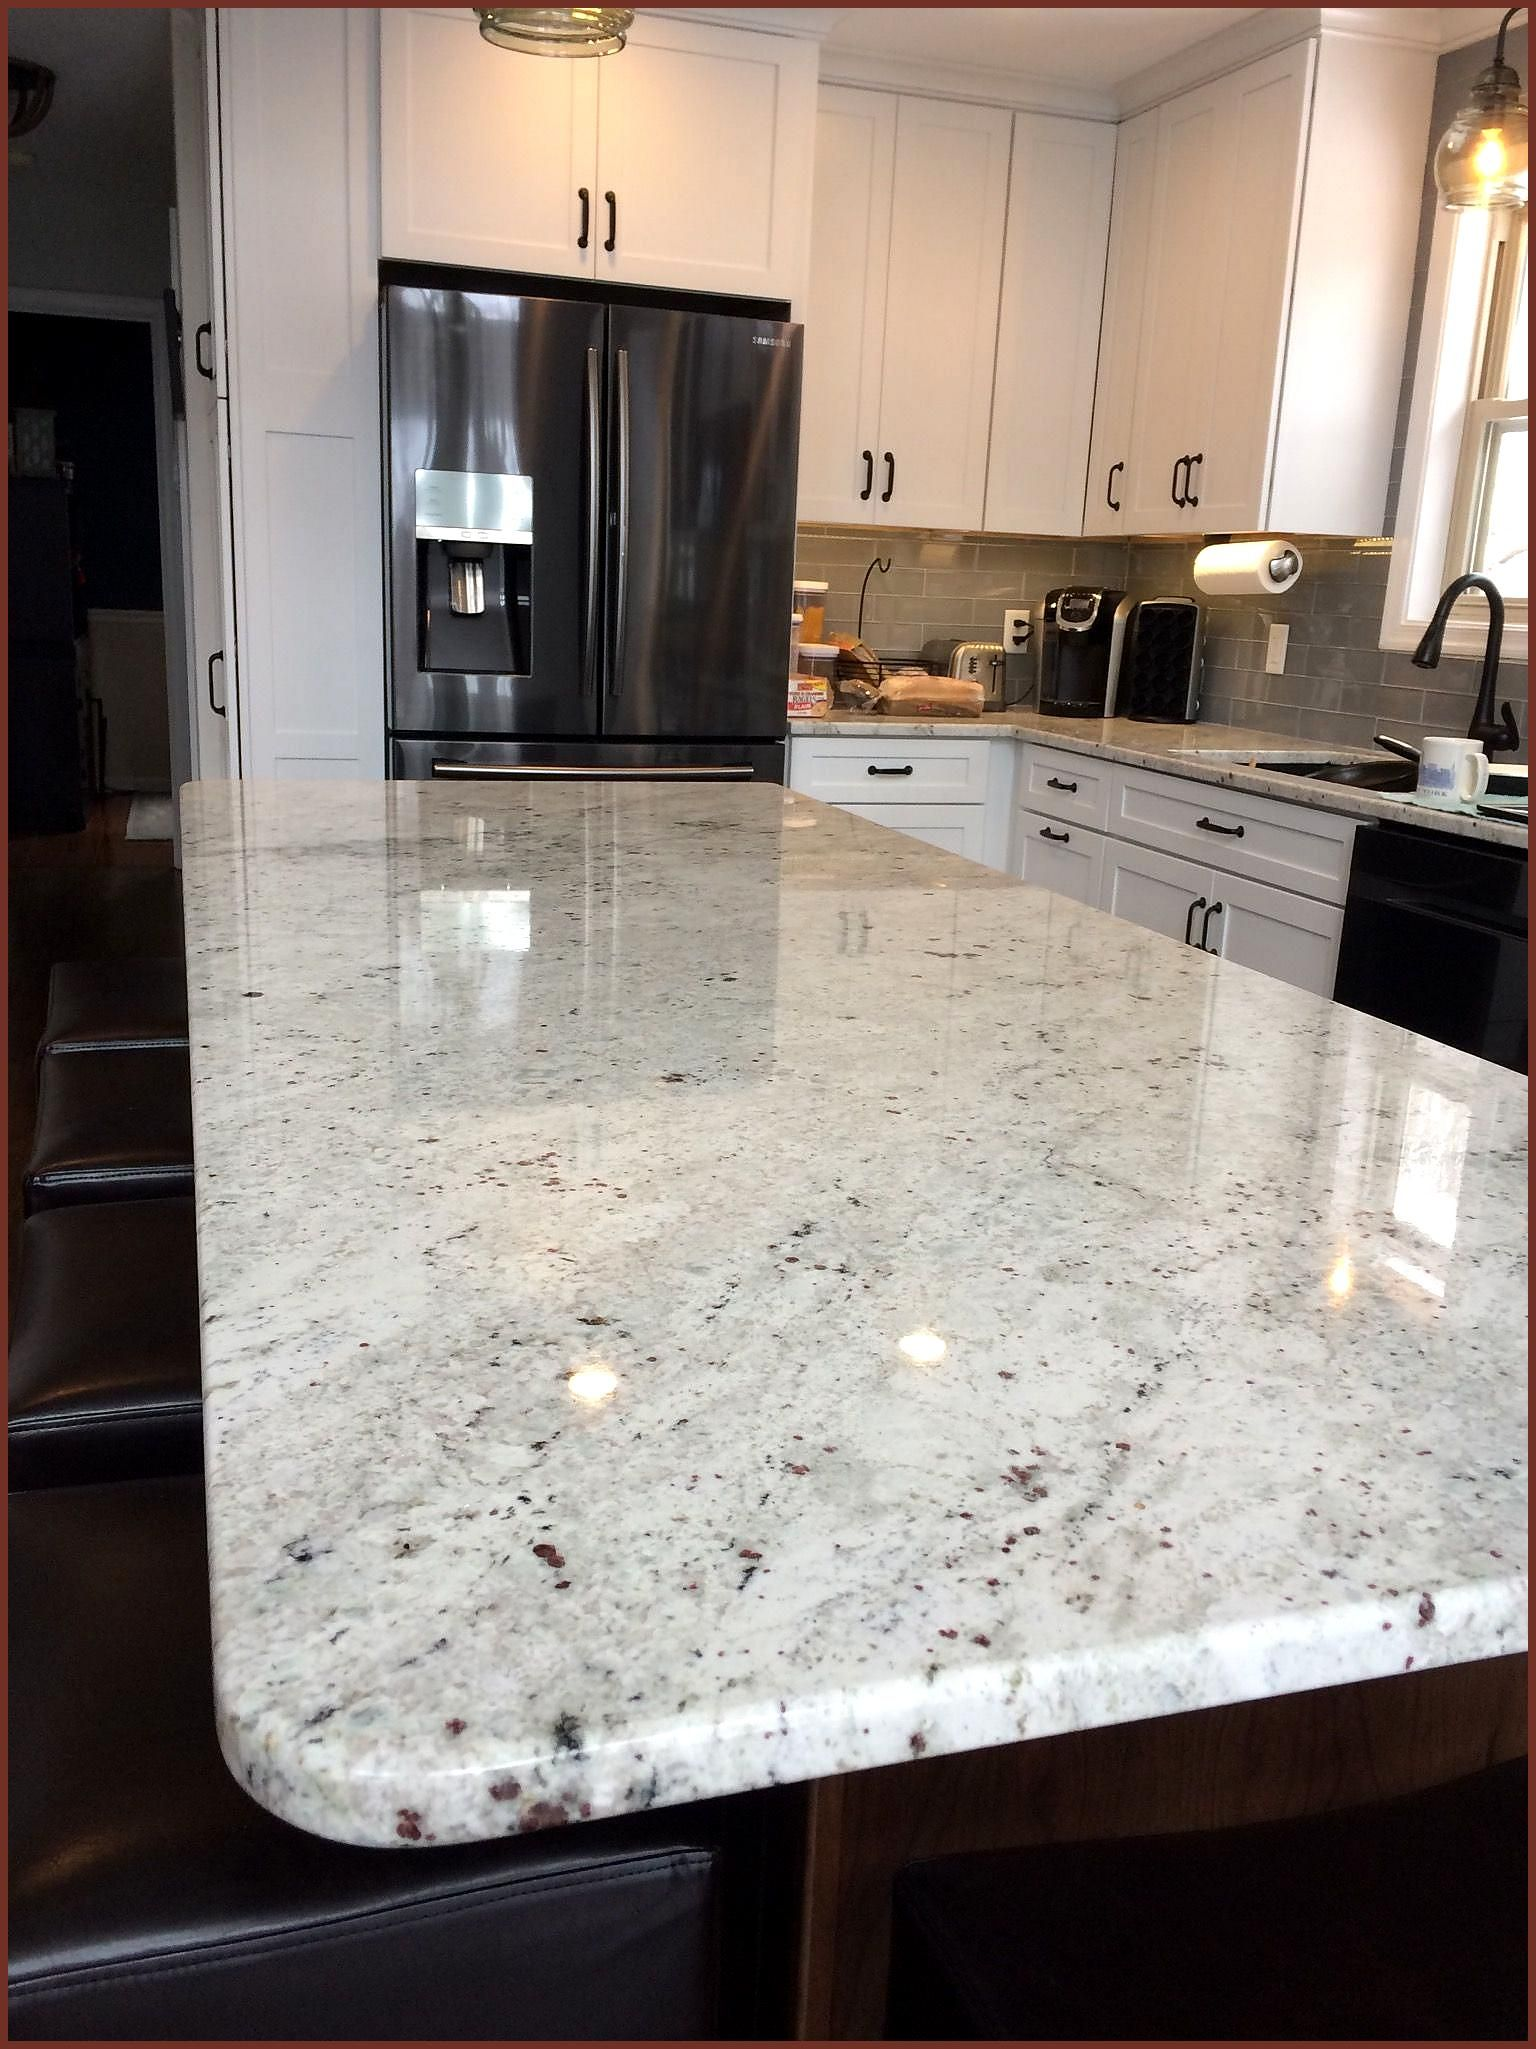 Granite Countertops Granite Kitchen Countertops Marble Slab Marble Counterto Marble Countertops Kitchen Granite